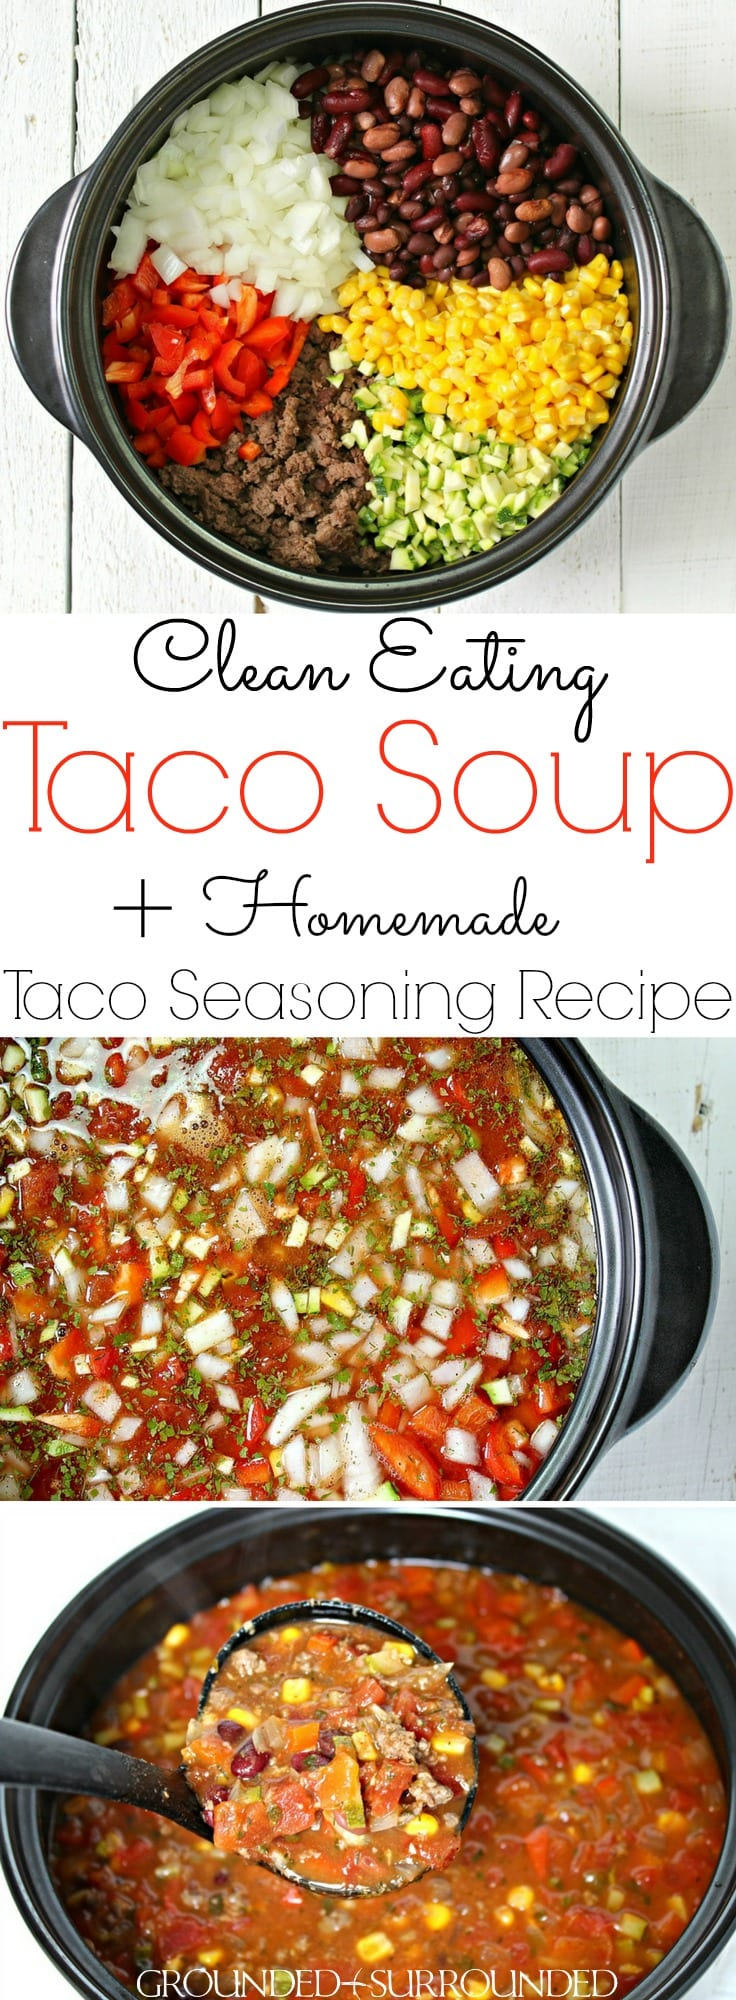 recipe: healthy taco soup with ground turkey [22]